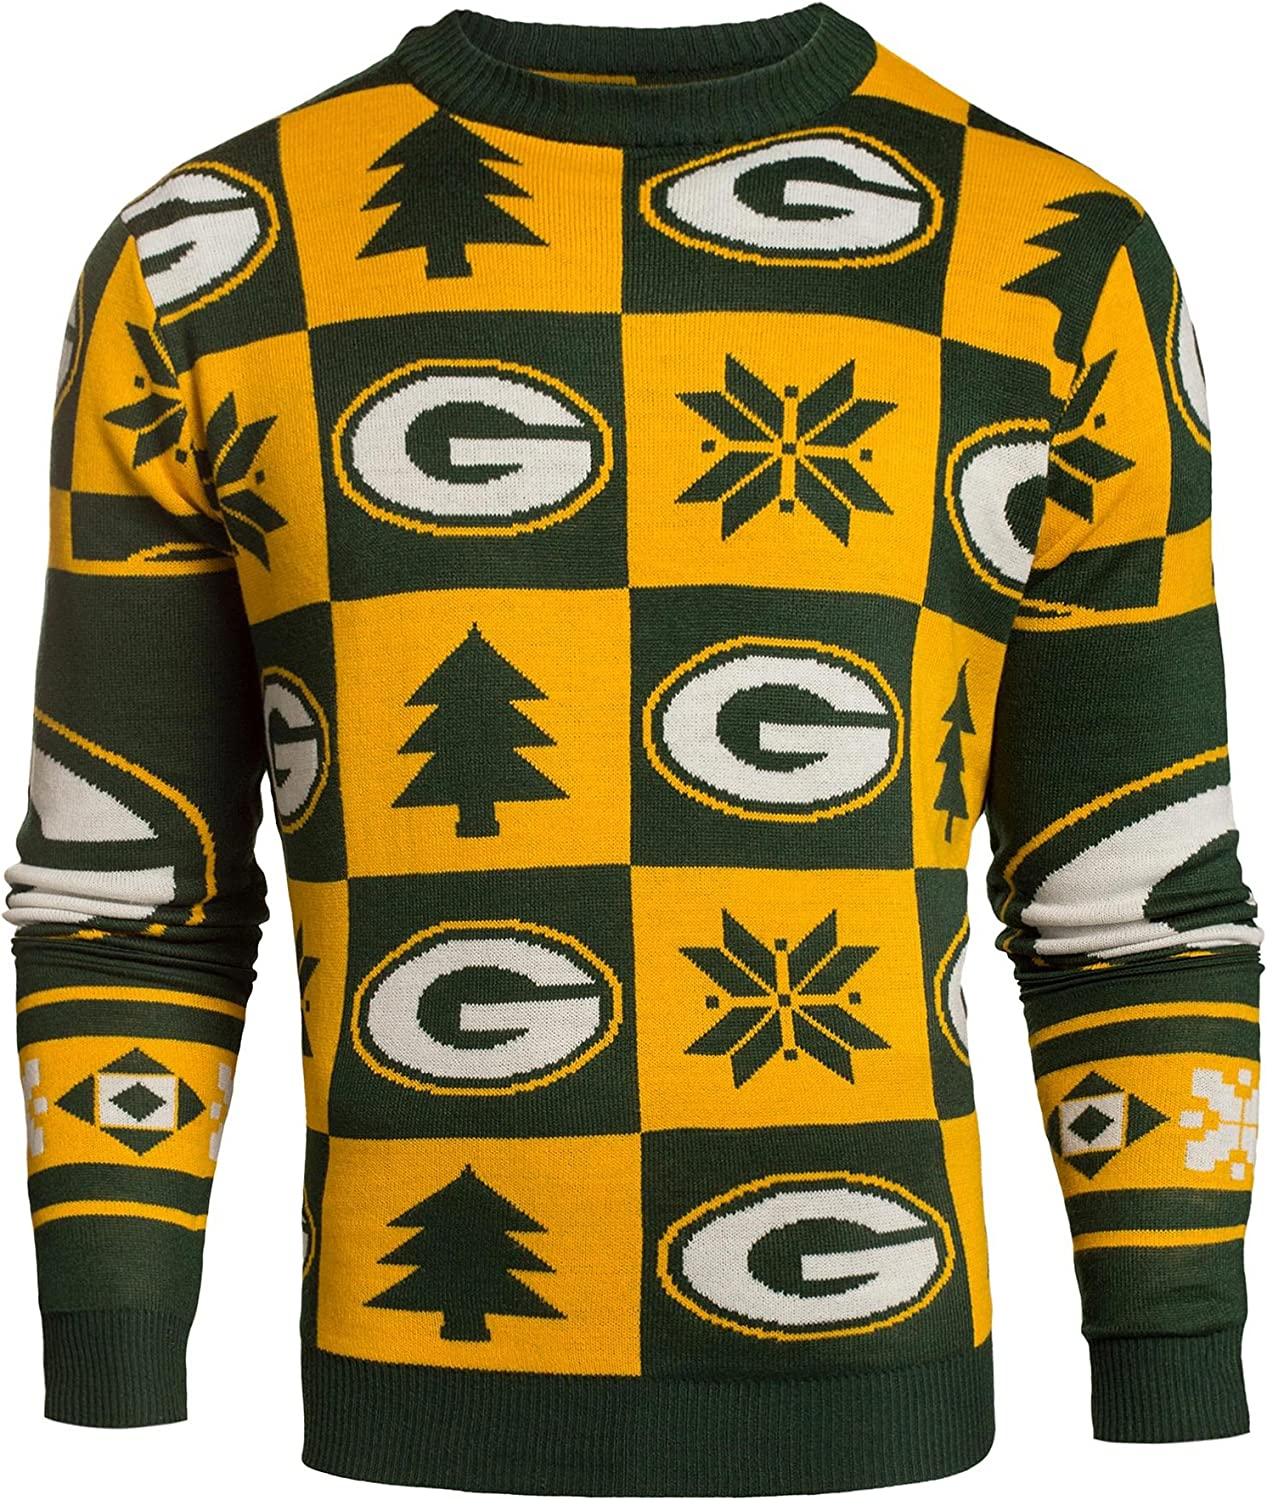 FOCO NFL Patches Style Ugly Sweater 2016 Edition All Free shipping stores are sold